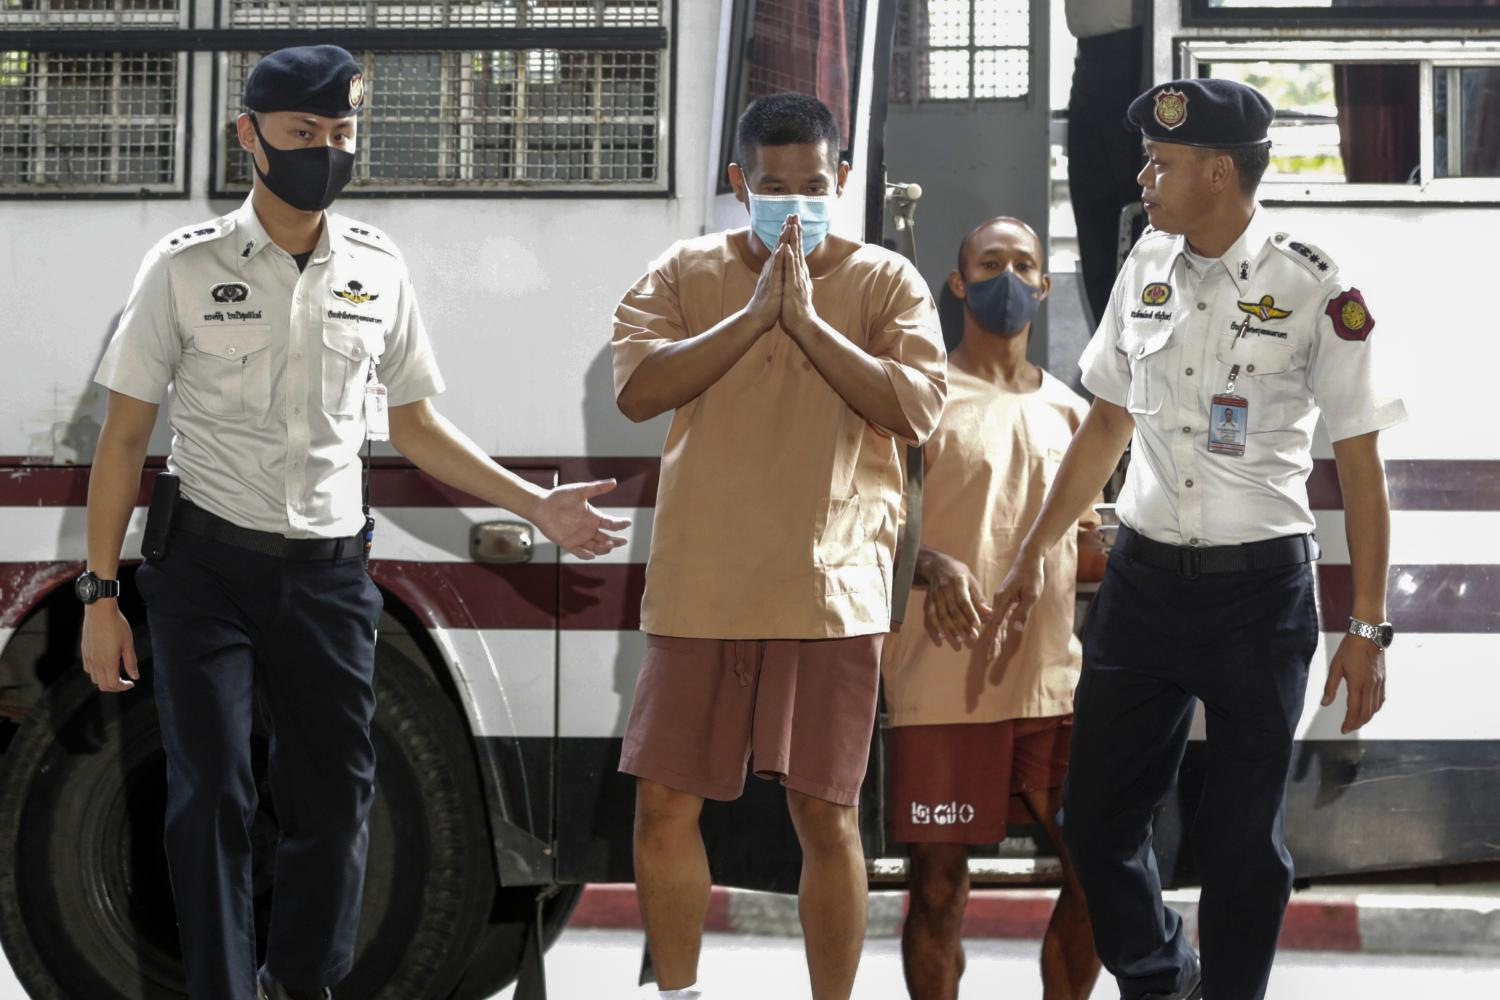 Prasittichai Khaokaew, 38, front centre, arrives at the Criminal Court on Aug 27 for sentencing after being convicted for murder and robbery at a gold shop in Lop Buri province on Jan 9. (Photo by Pornprom Satrabhaya)